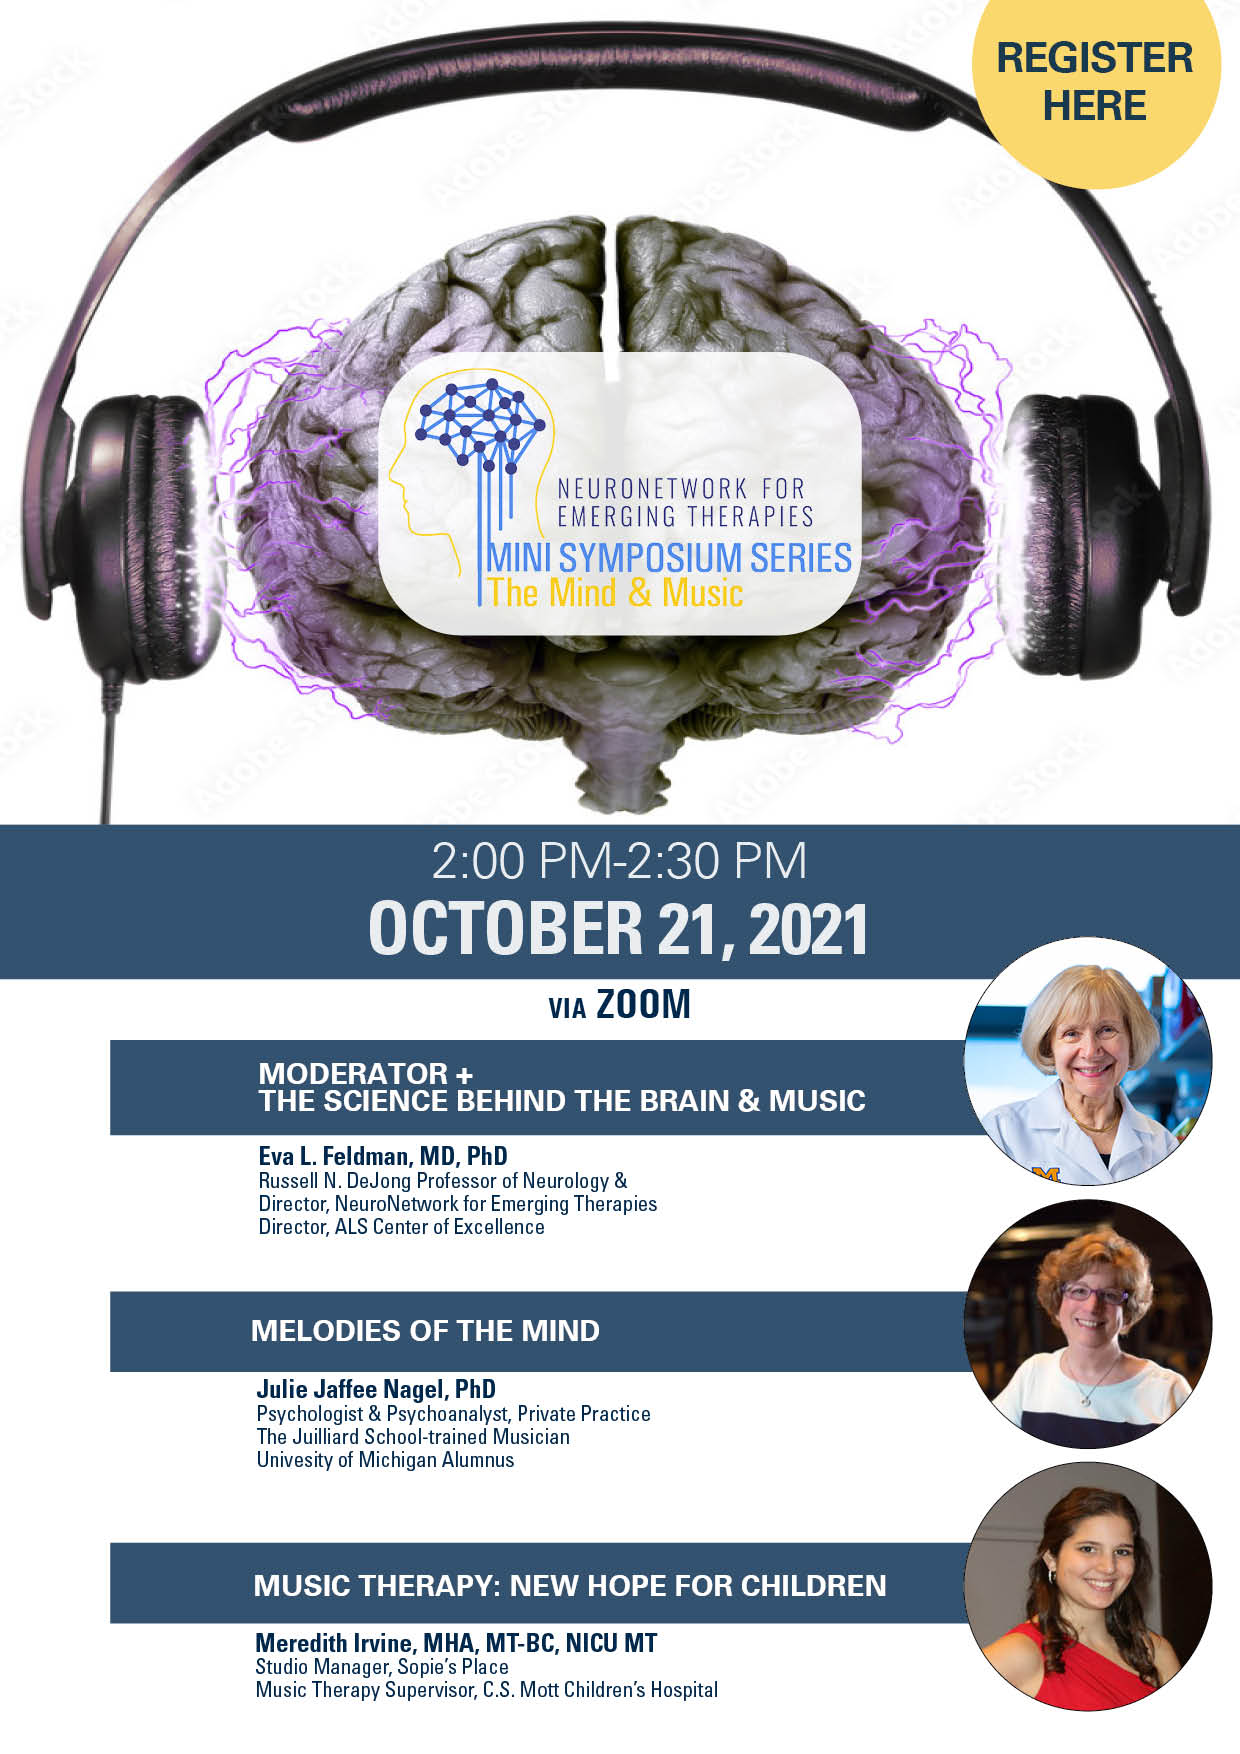 Flier for the NeuroNetwork for Emerging Therapies Mini Symposium Series: The Mind & Music